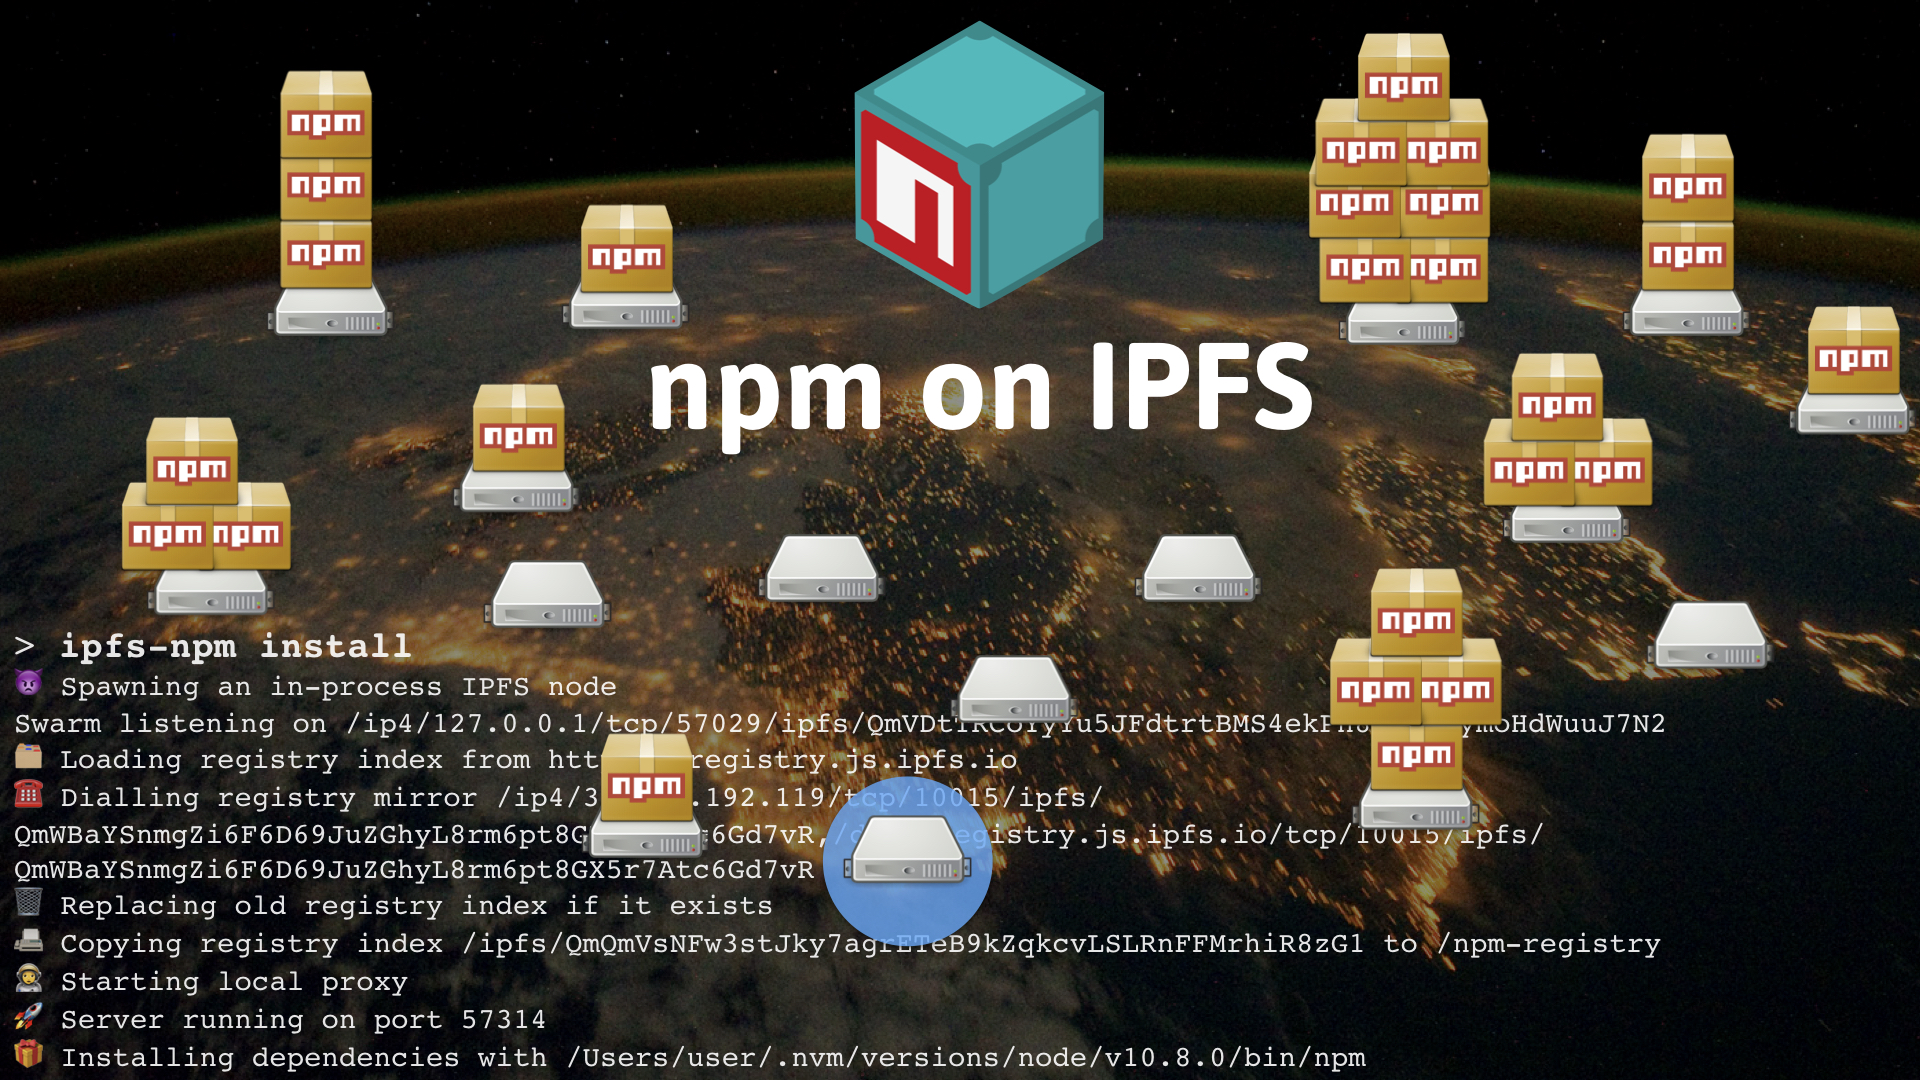 npm distributed on top of lots of connected IPFS nodes worldwide